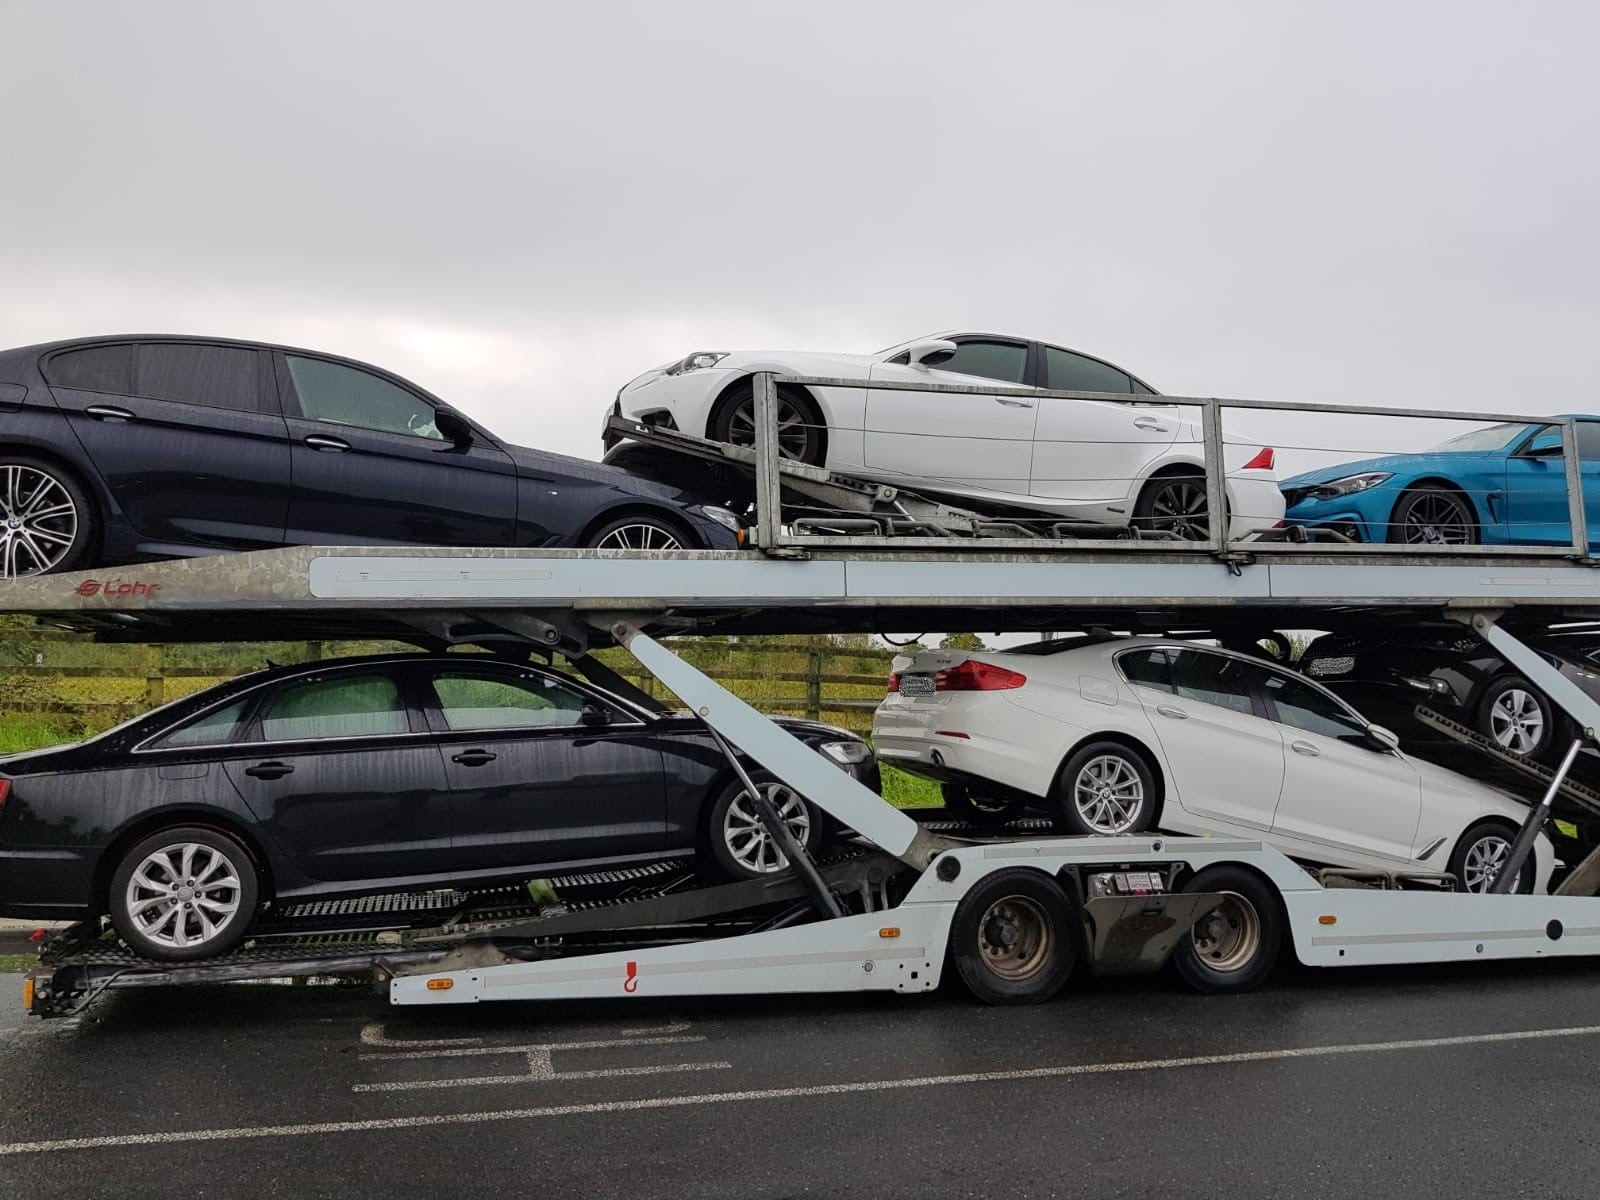 Seized-cars-ireland-3